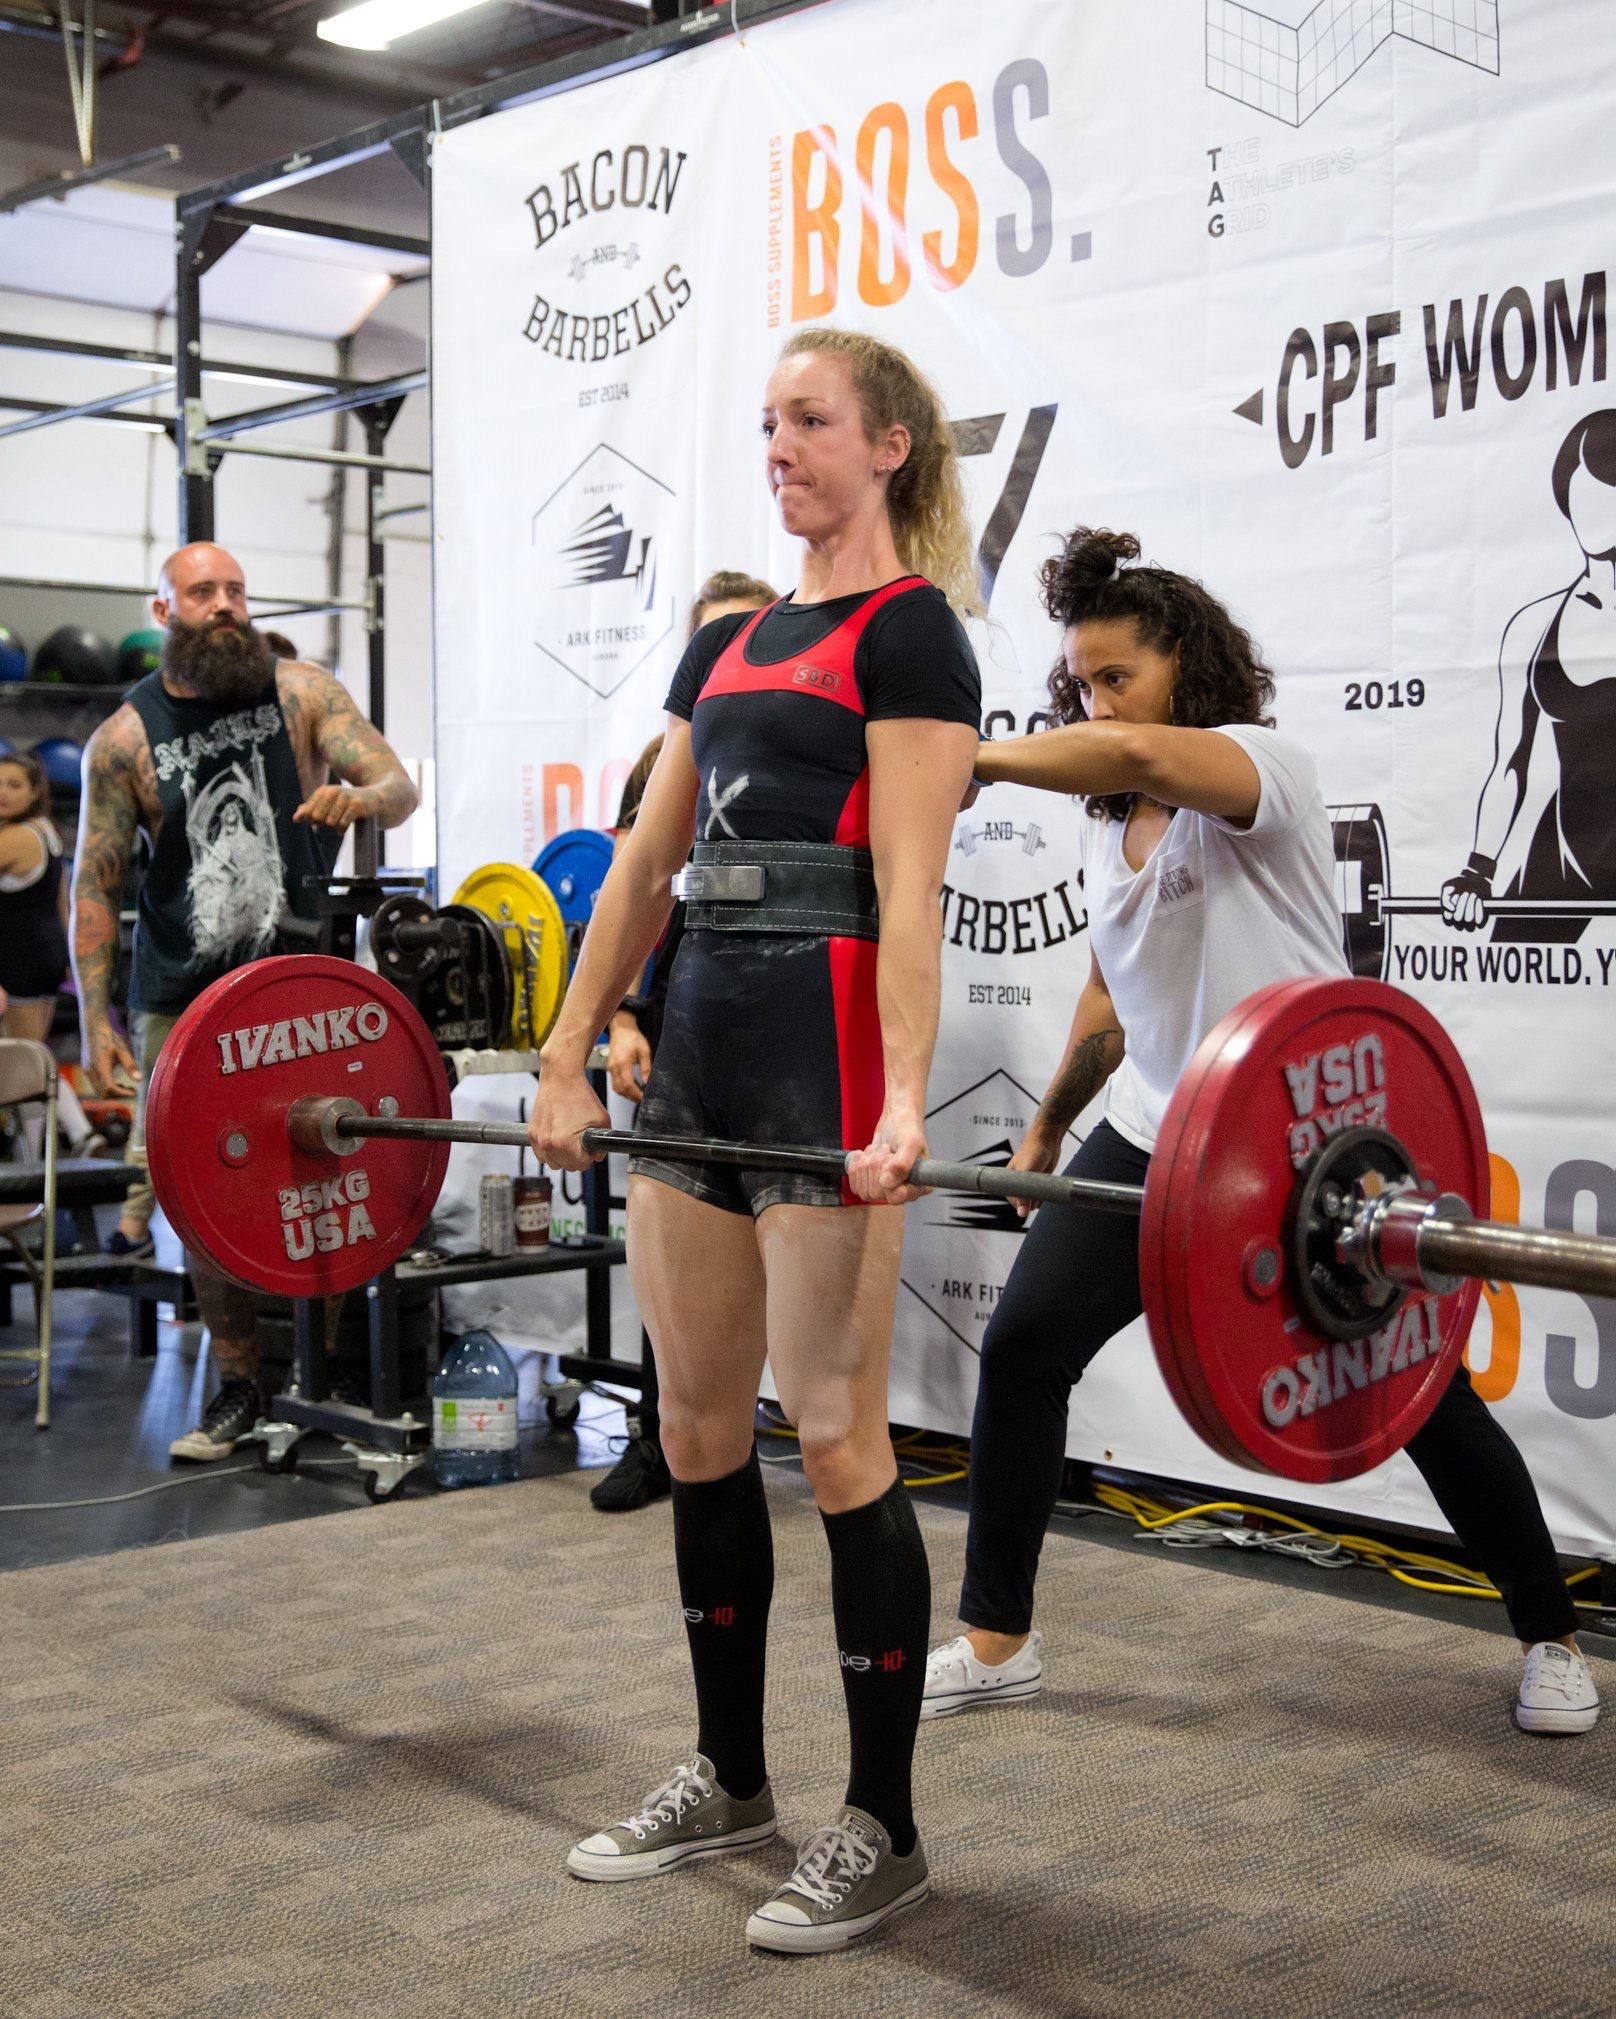 Emily competing in her very first power lifting competition in September 2019.